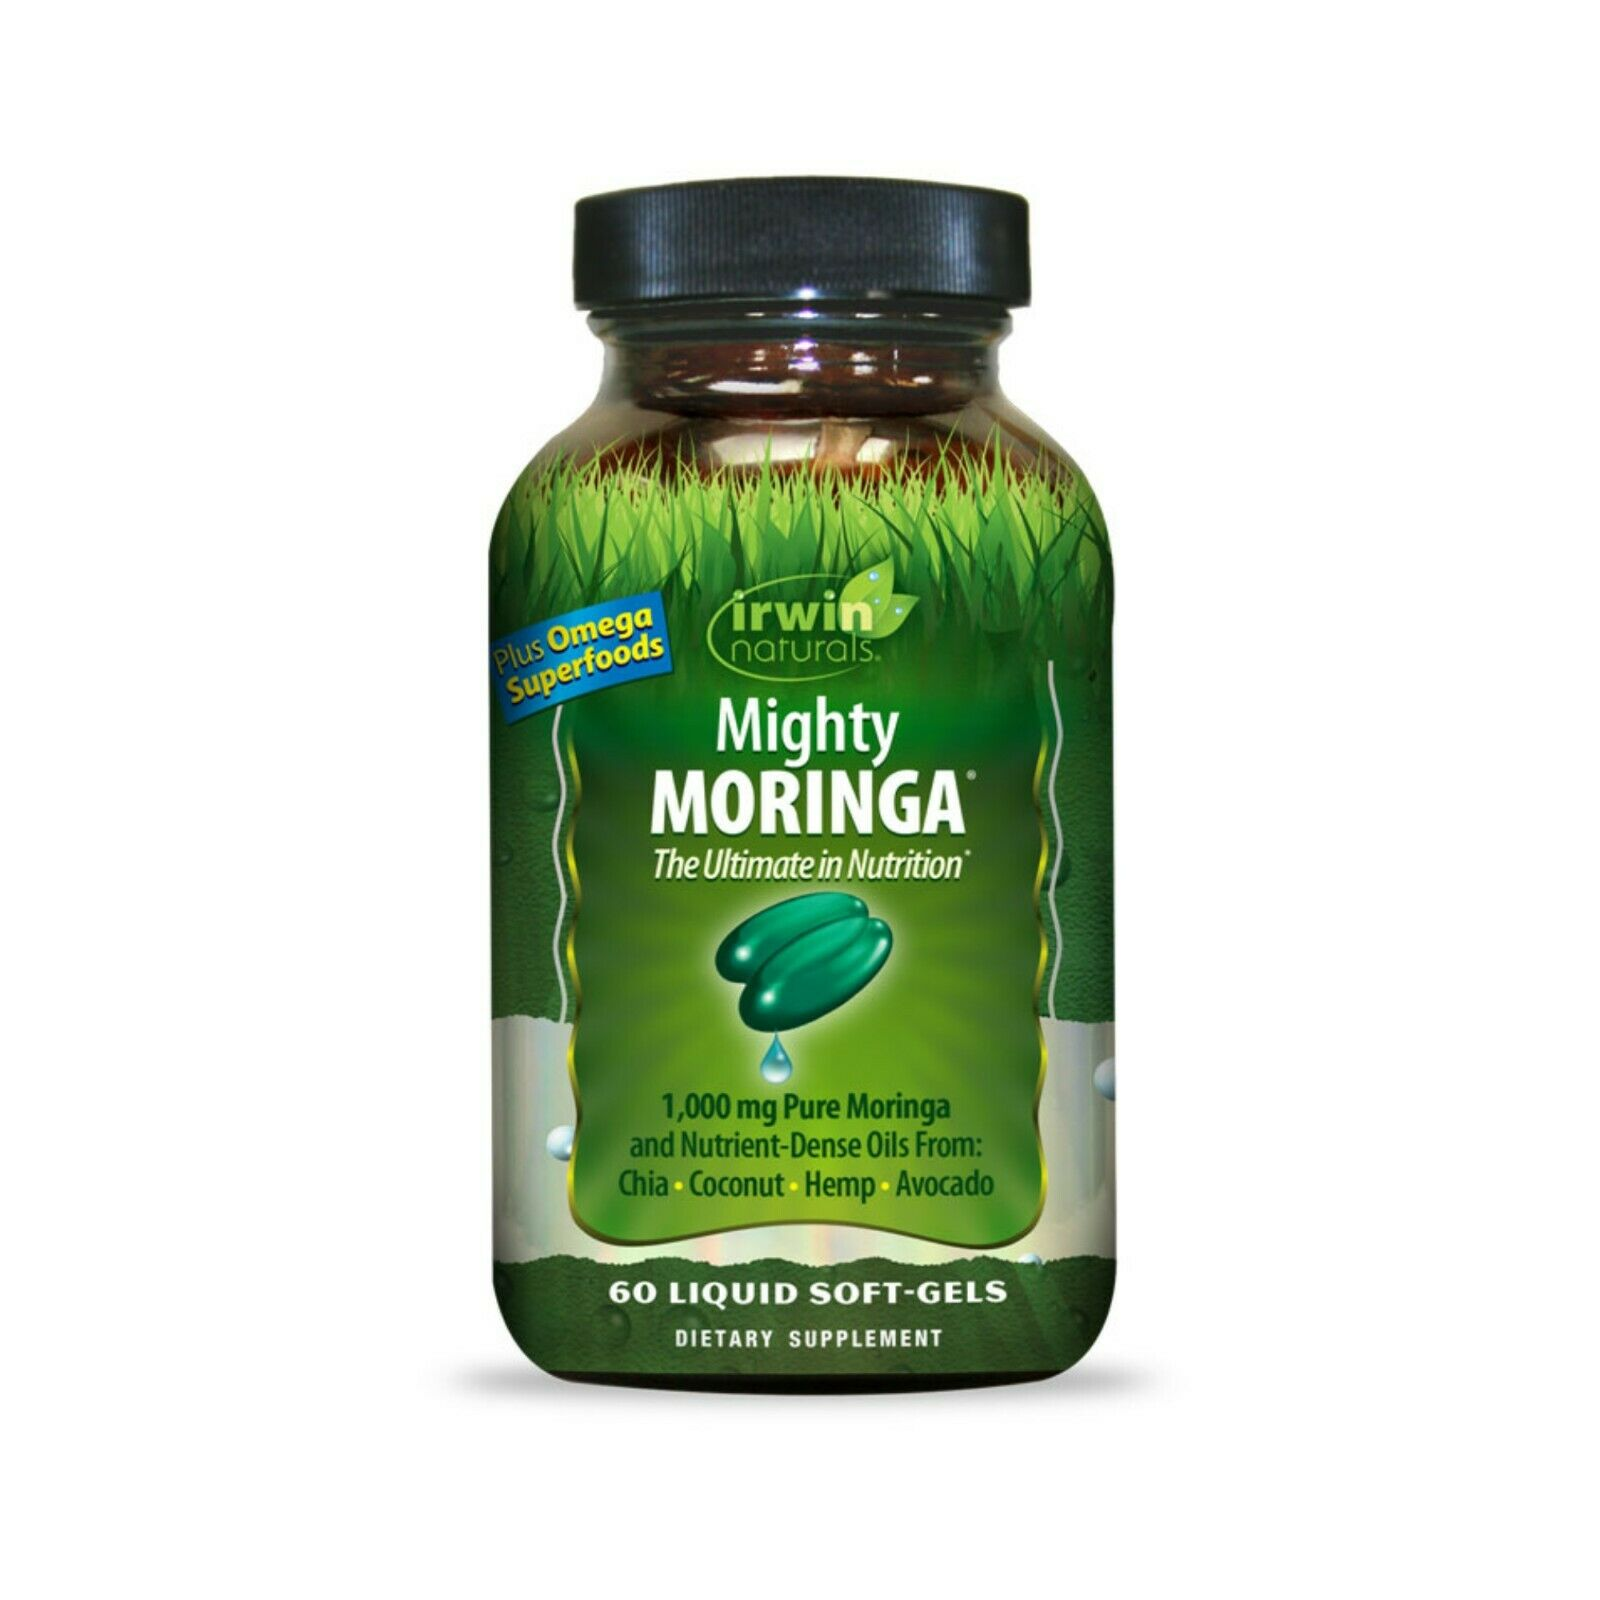 Irwin Naturals Mighty Moringa 1000mg with Omega Superfoods and Pill Case 1